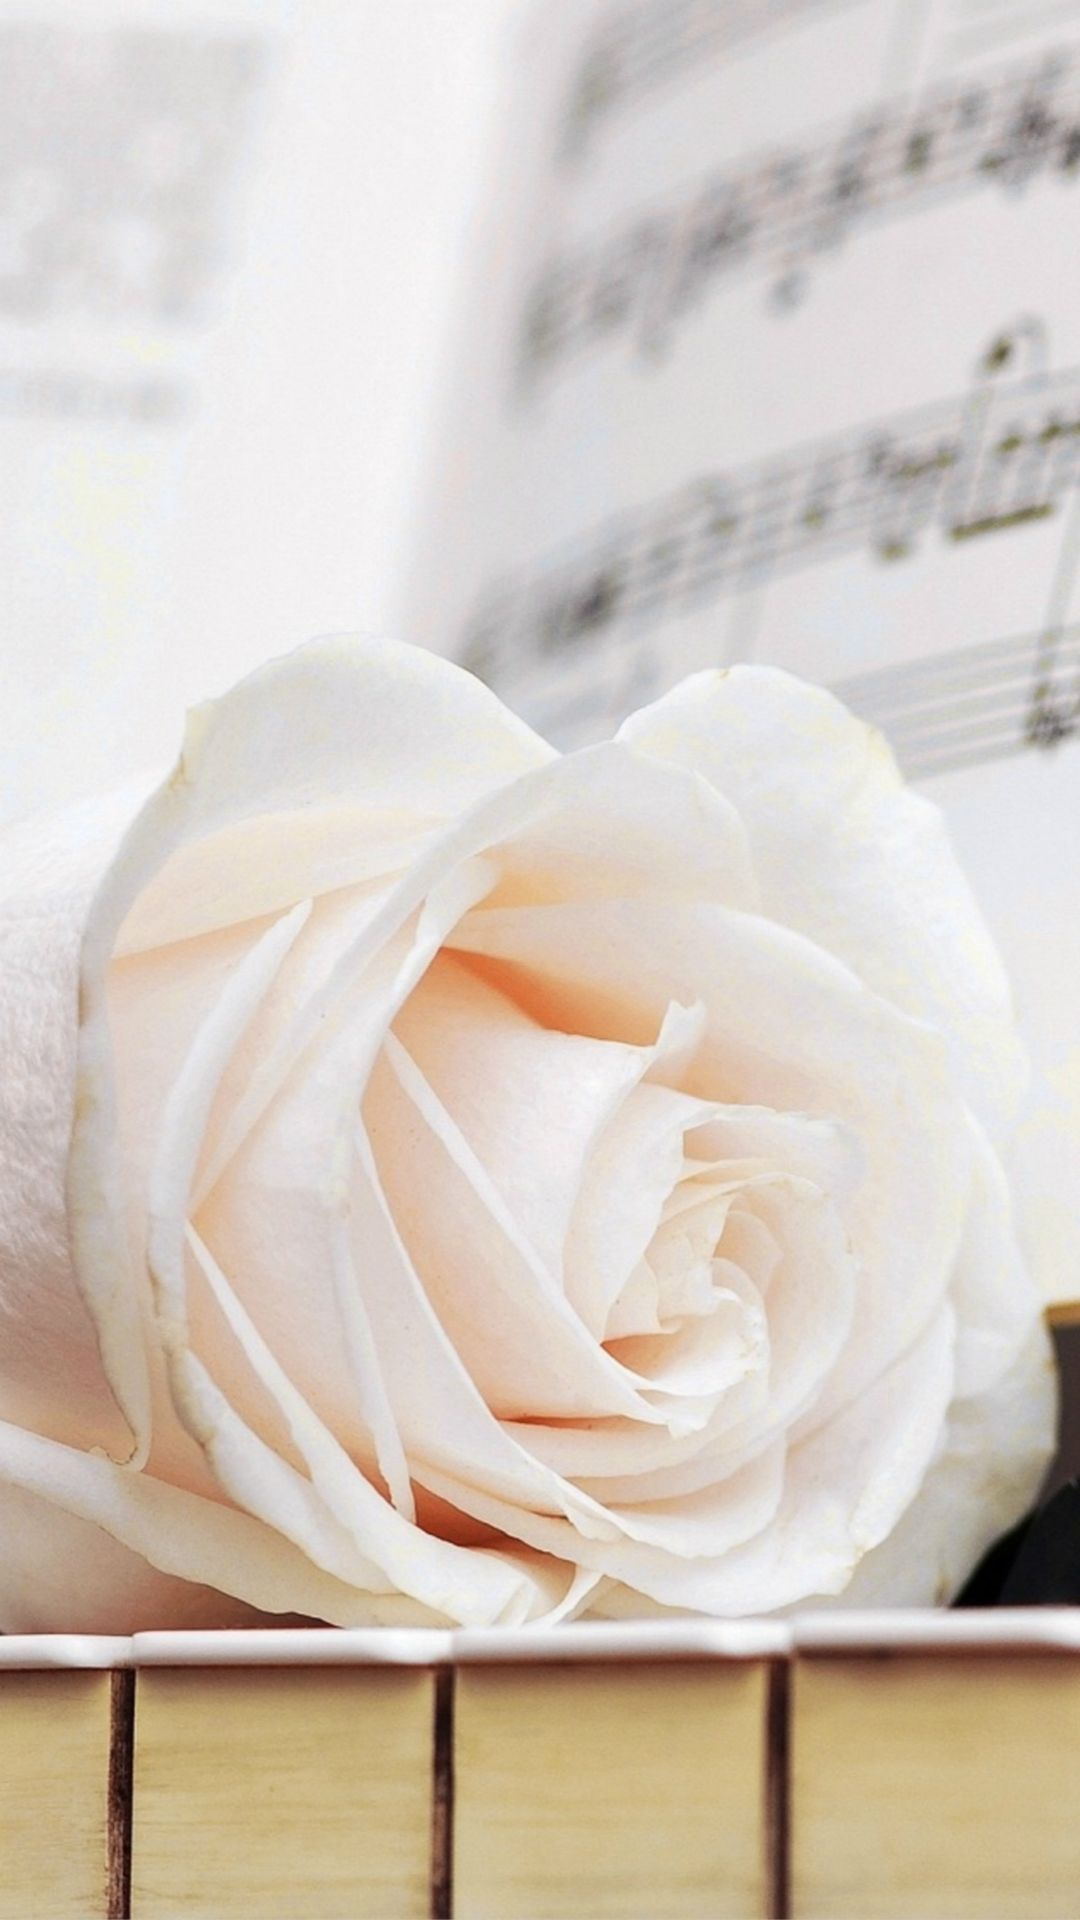 white rose images wallpaper